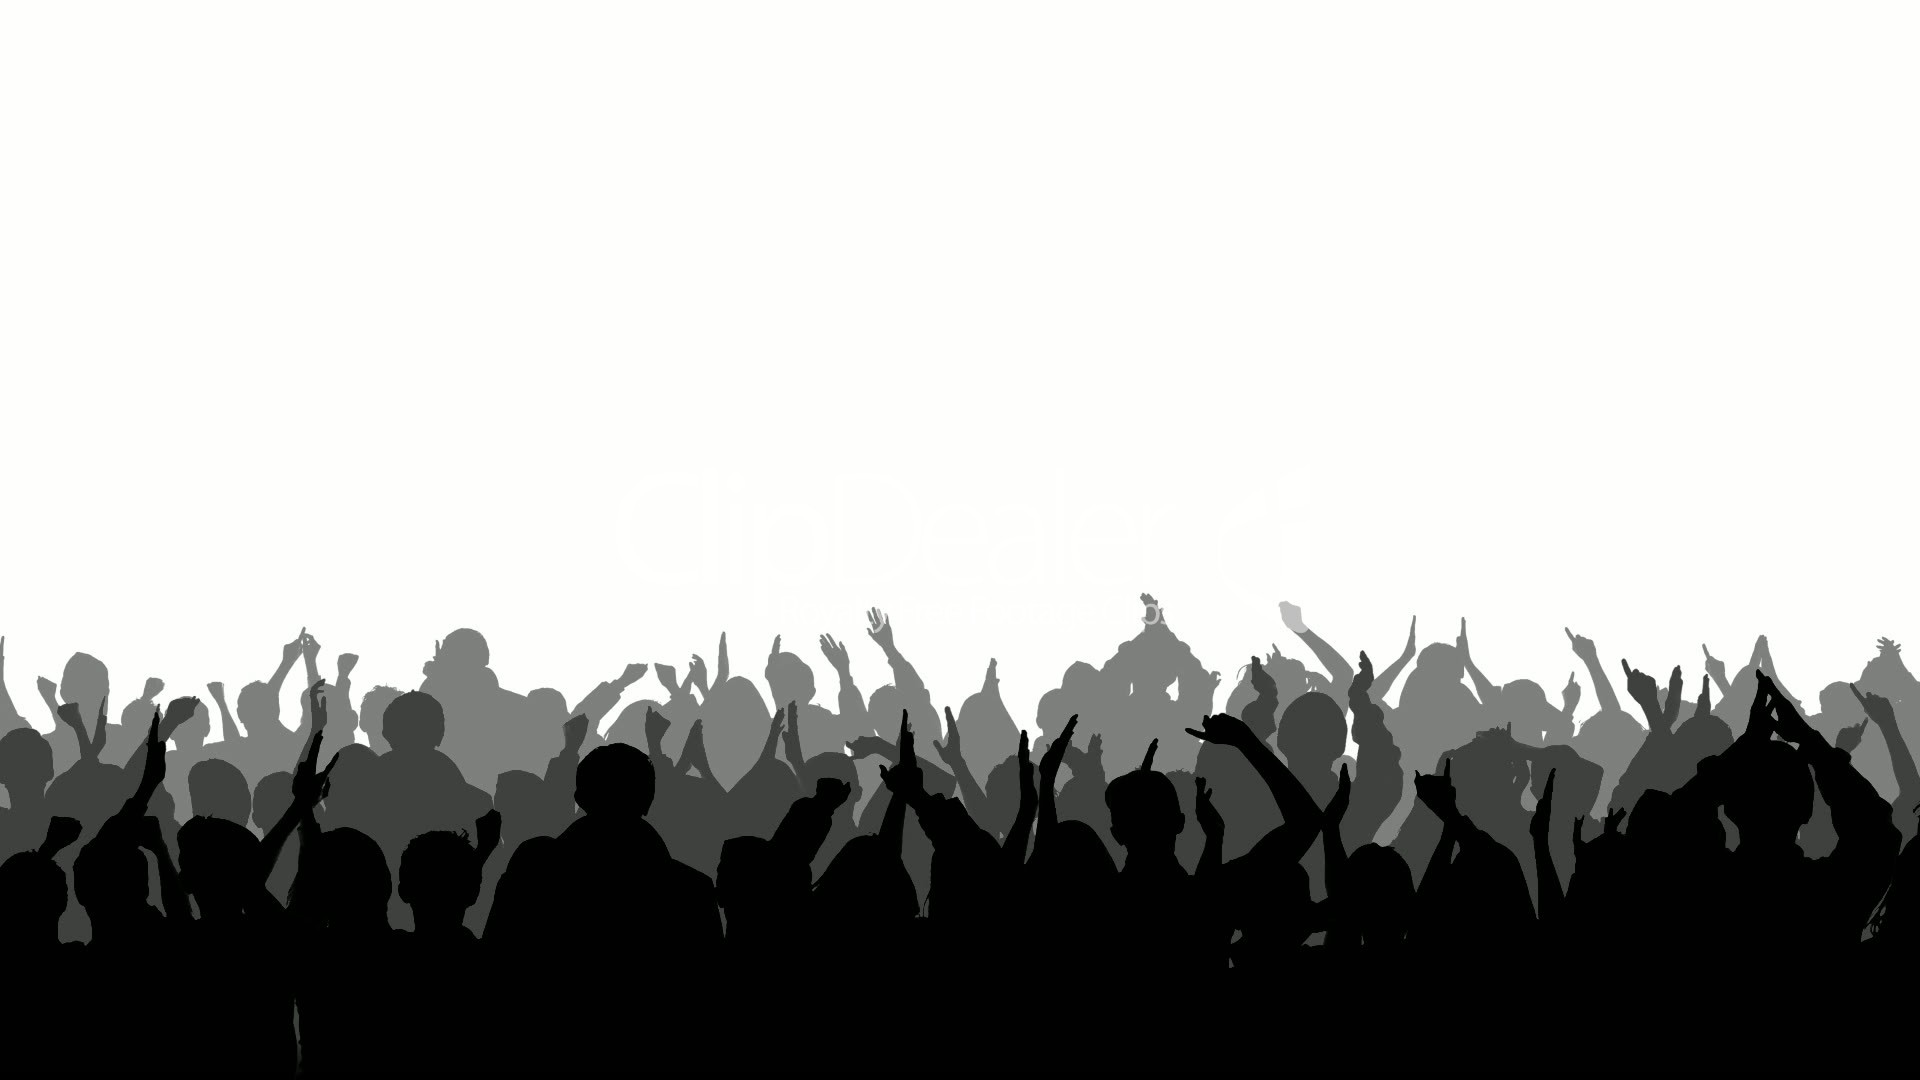 Crowd clipart cheered. Silhouette free collection download